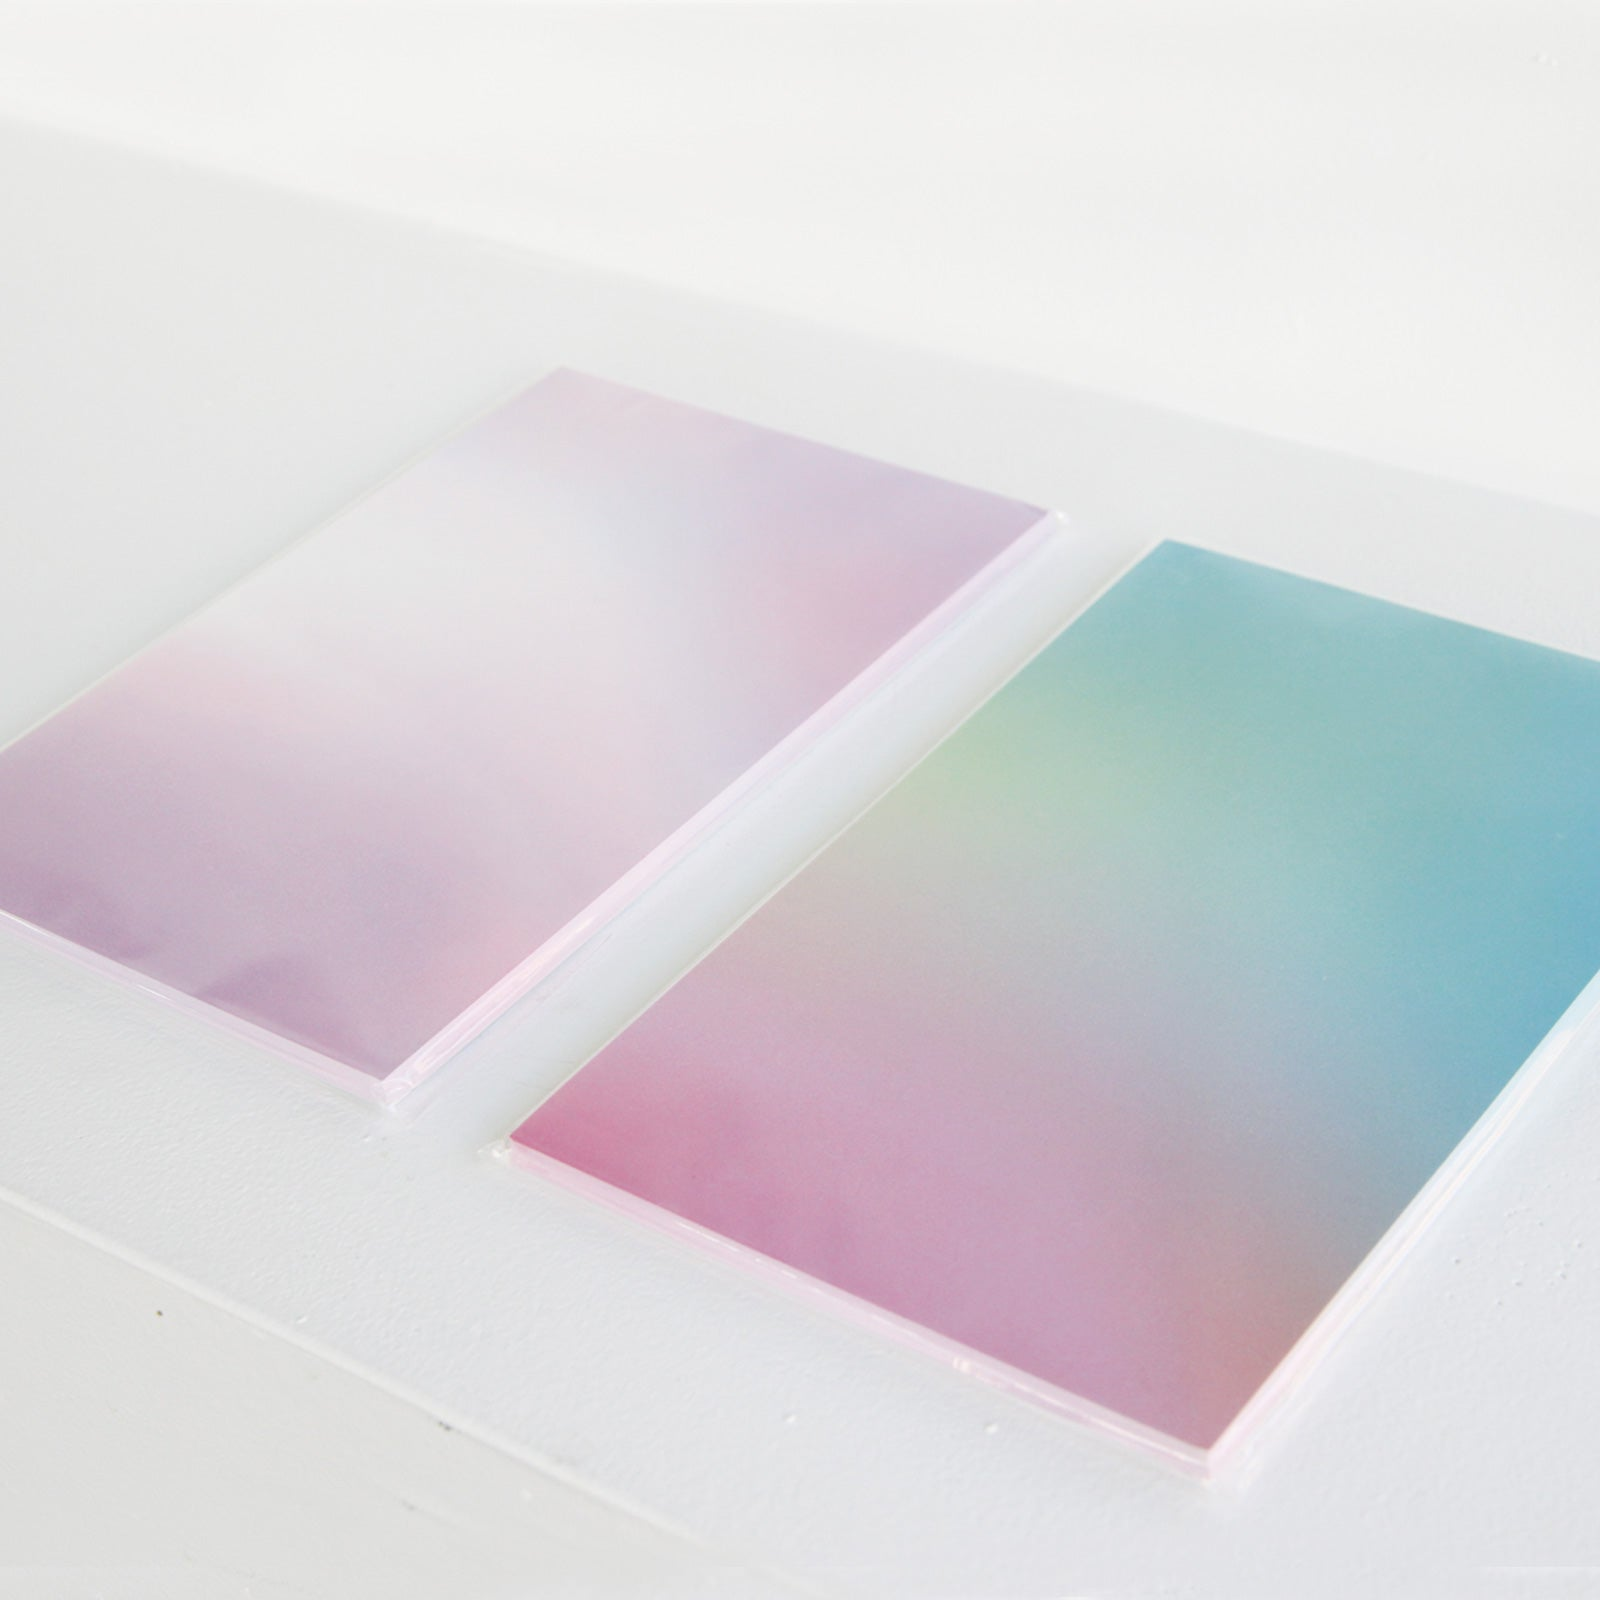 Gradient Notepad | Poketo | Los Angeles, CA at Sustain - Gallery and Shop - Chicago, IL